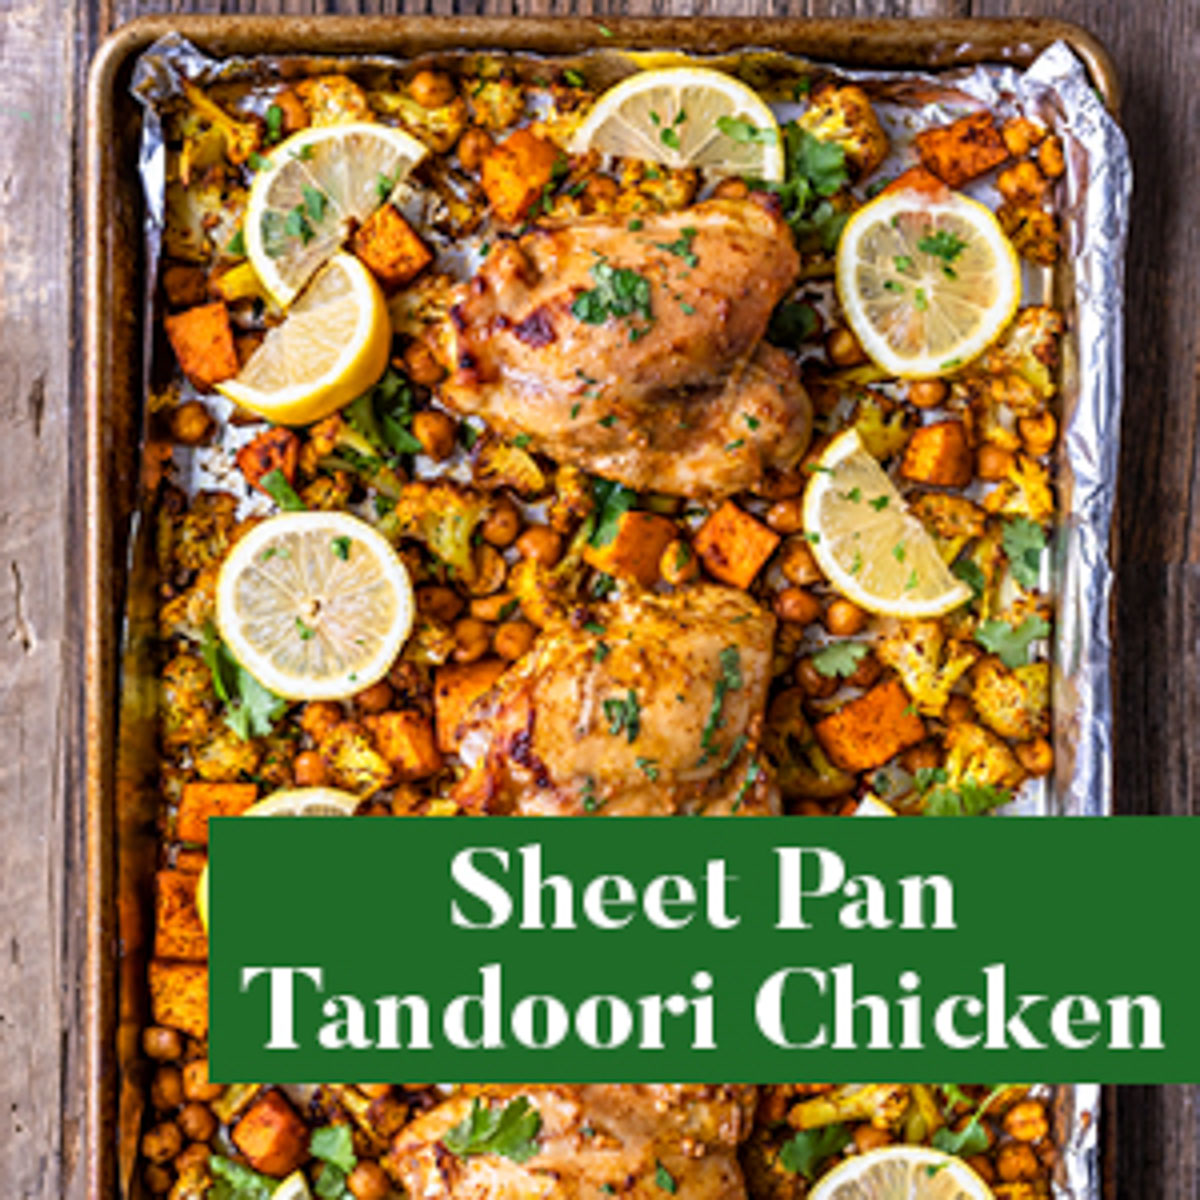 Sheet Pan Tandoori Chicken from The Well Plated Cookbook